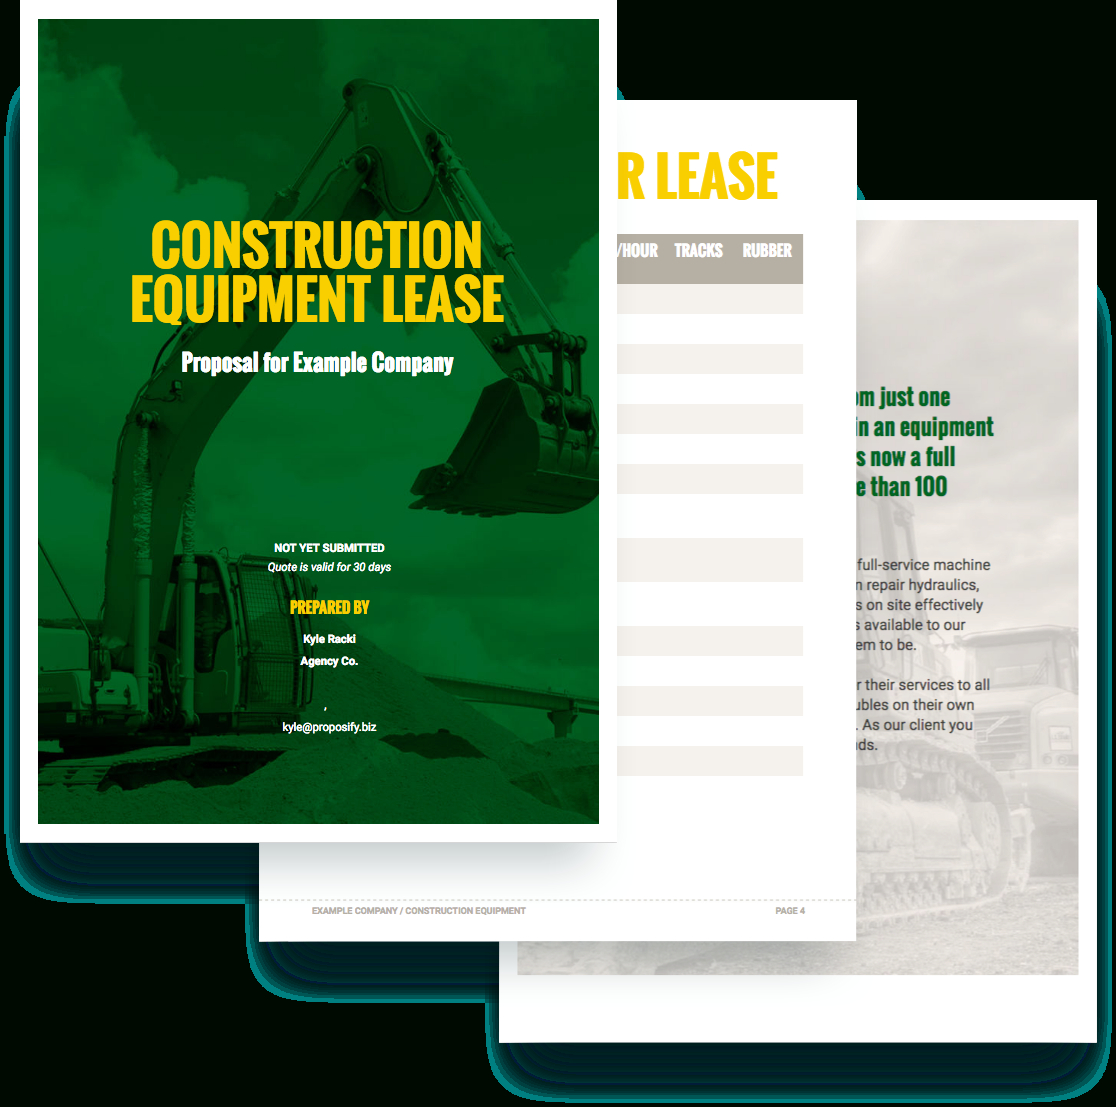 Construction Equipment Proposal Template  Free Sample  Proposify Within Equipment Proposal Template